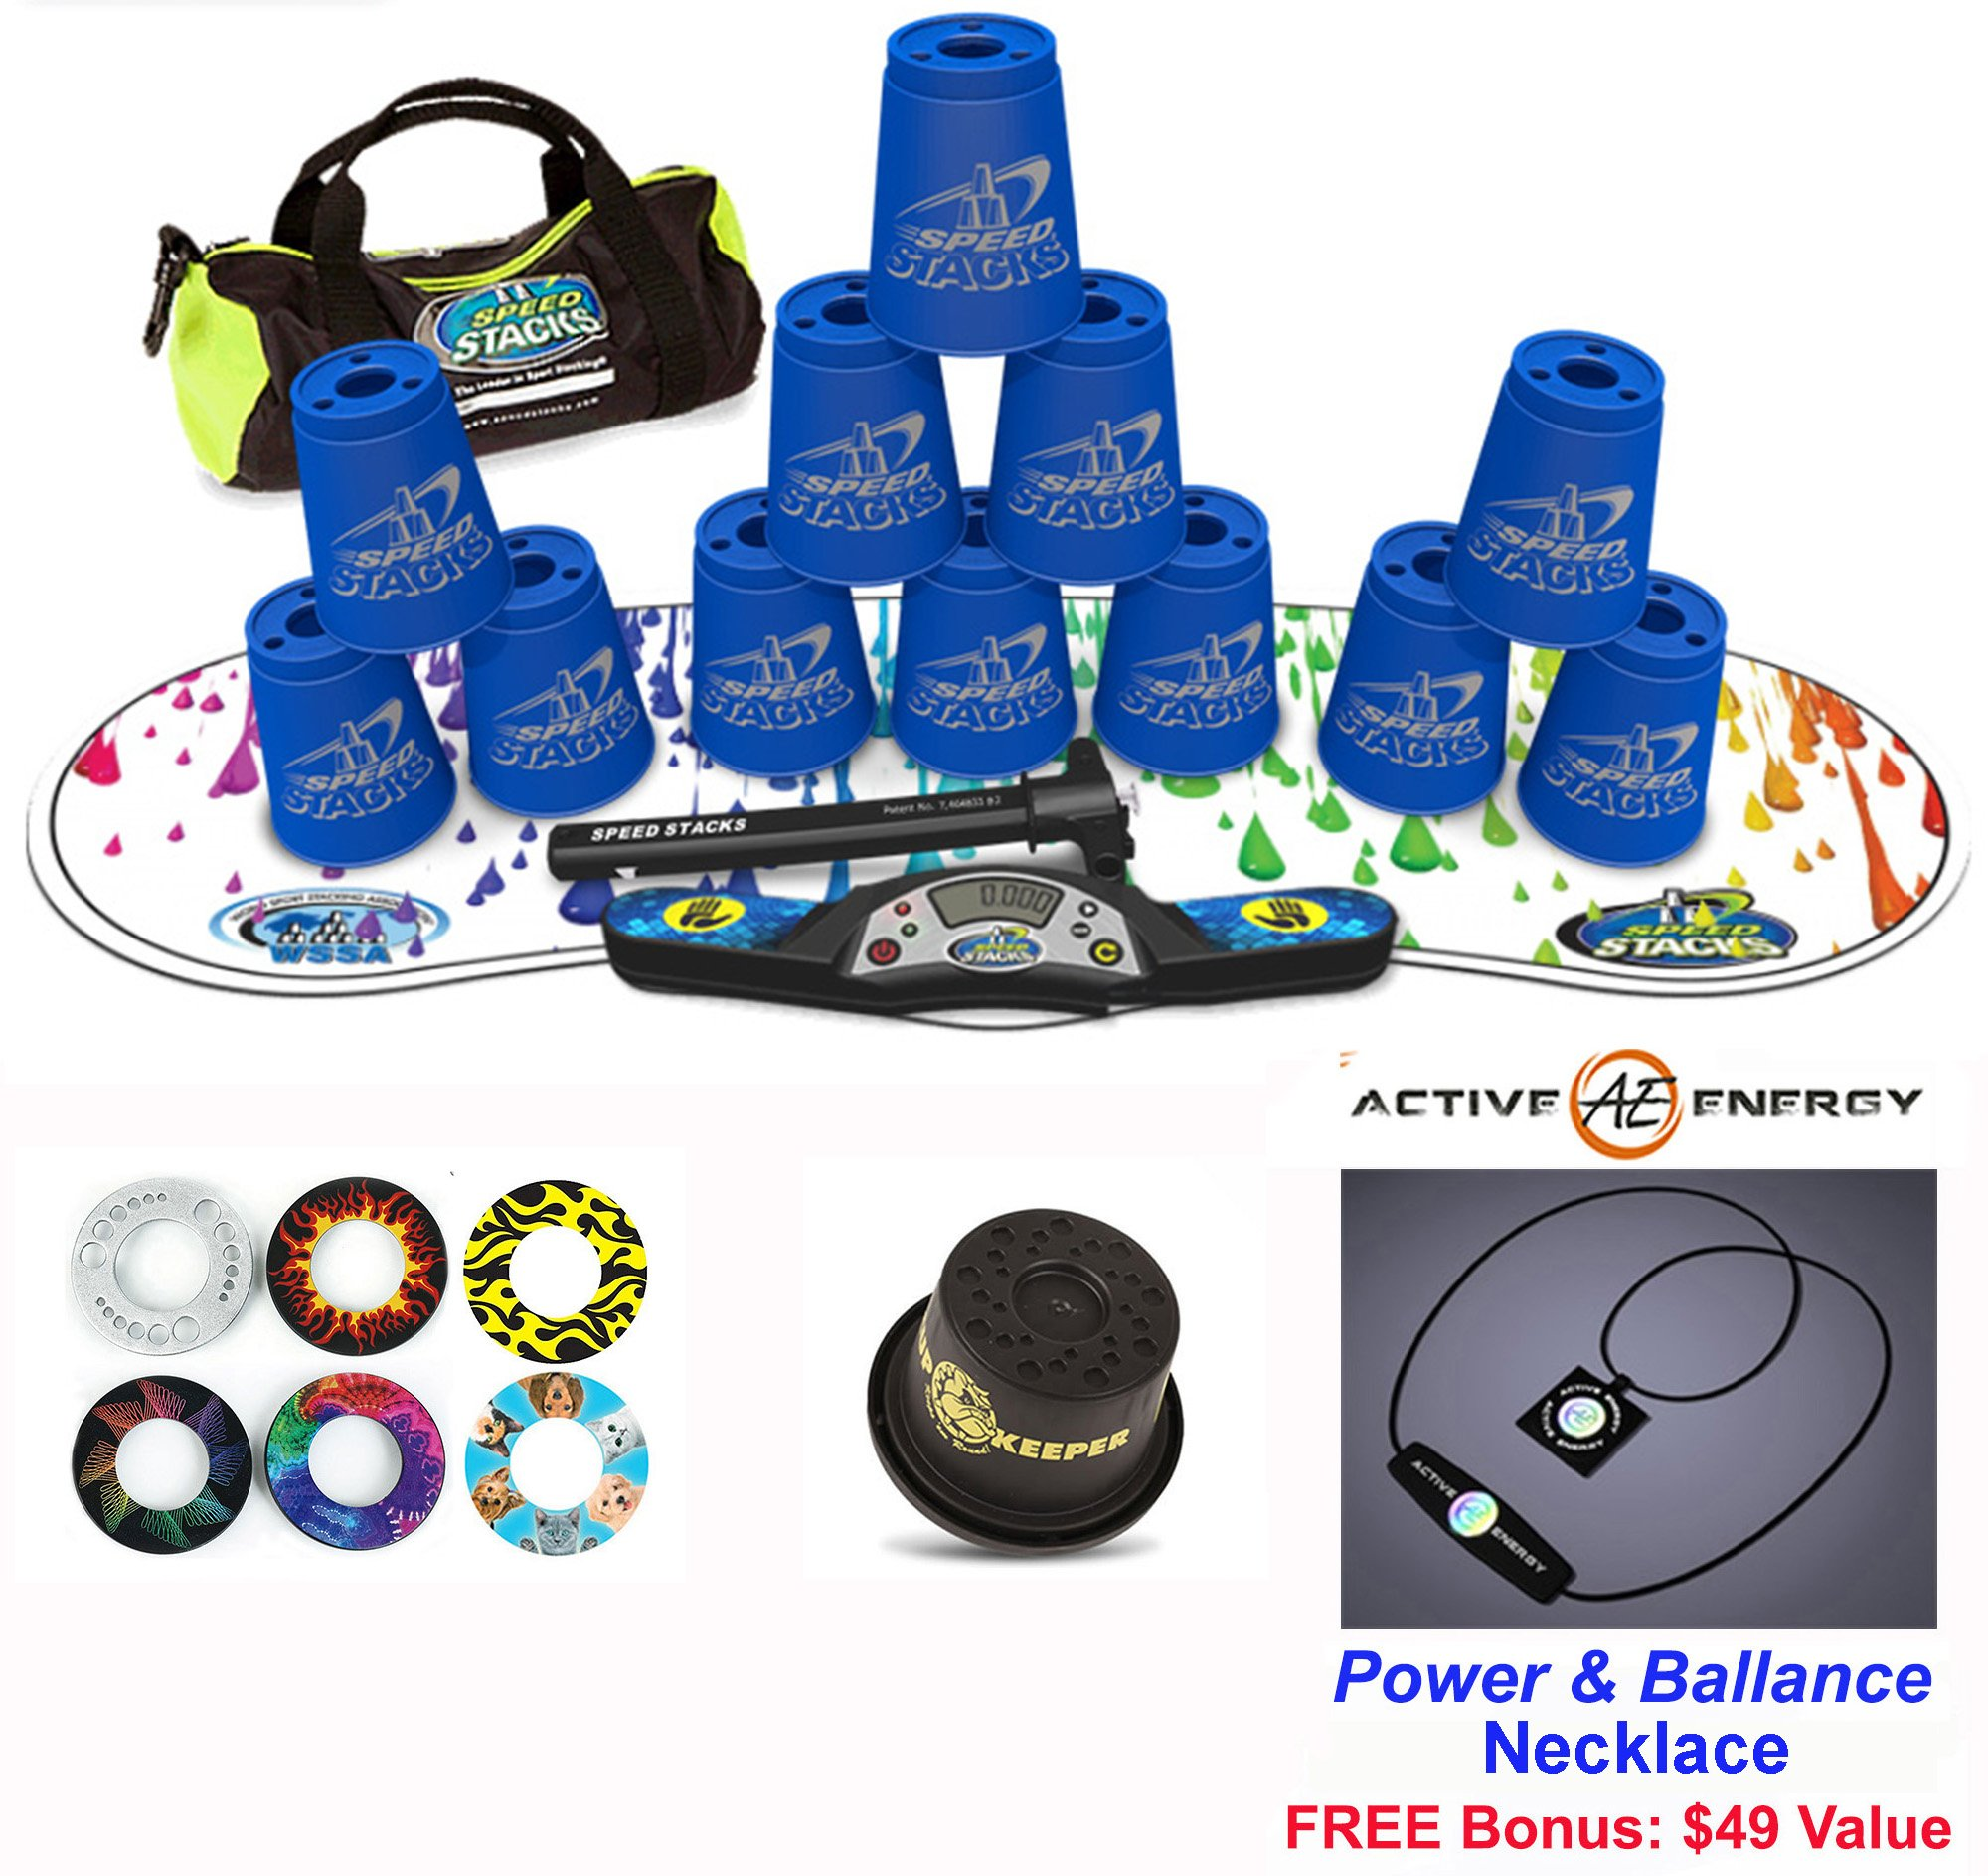 Speed Stacks Combo Set ''The Works'': 12 BLUE 4'' Cups, RAINBOW DROP Gen 3 Mat, G4 Pro Timer, Cup Keeper, Stem, Gear Bag + Active Energy Necklace